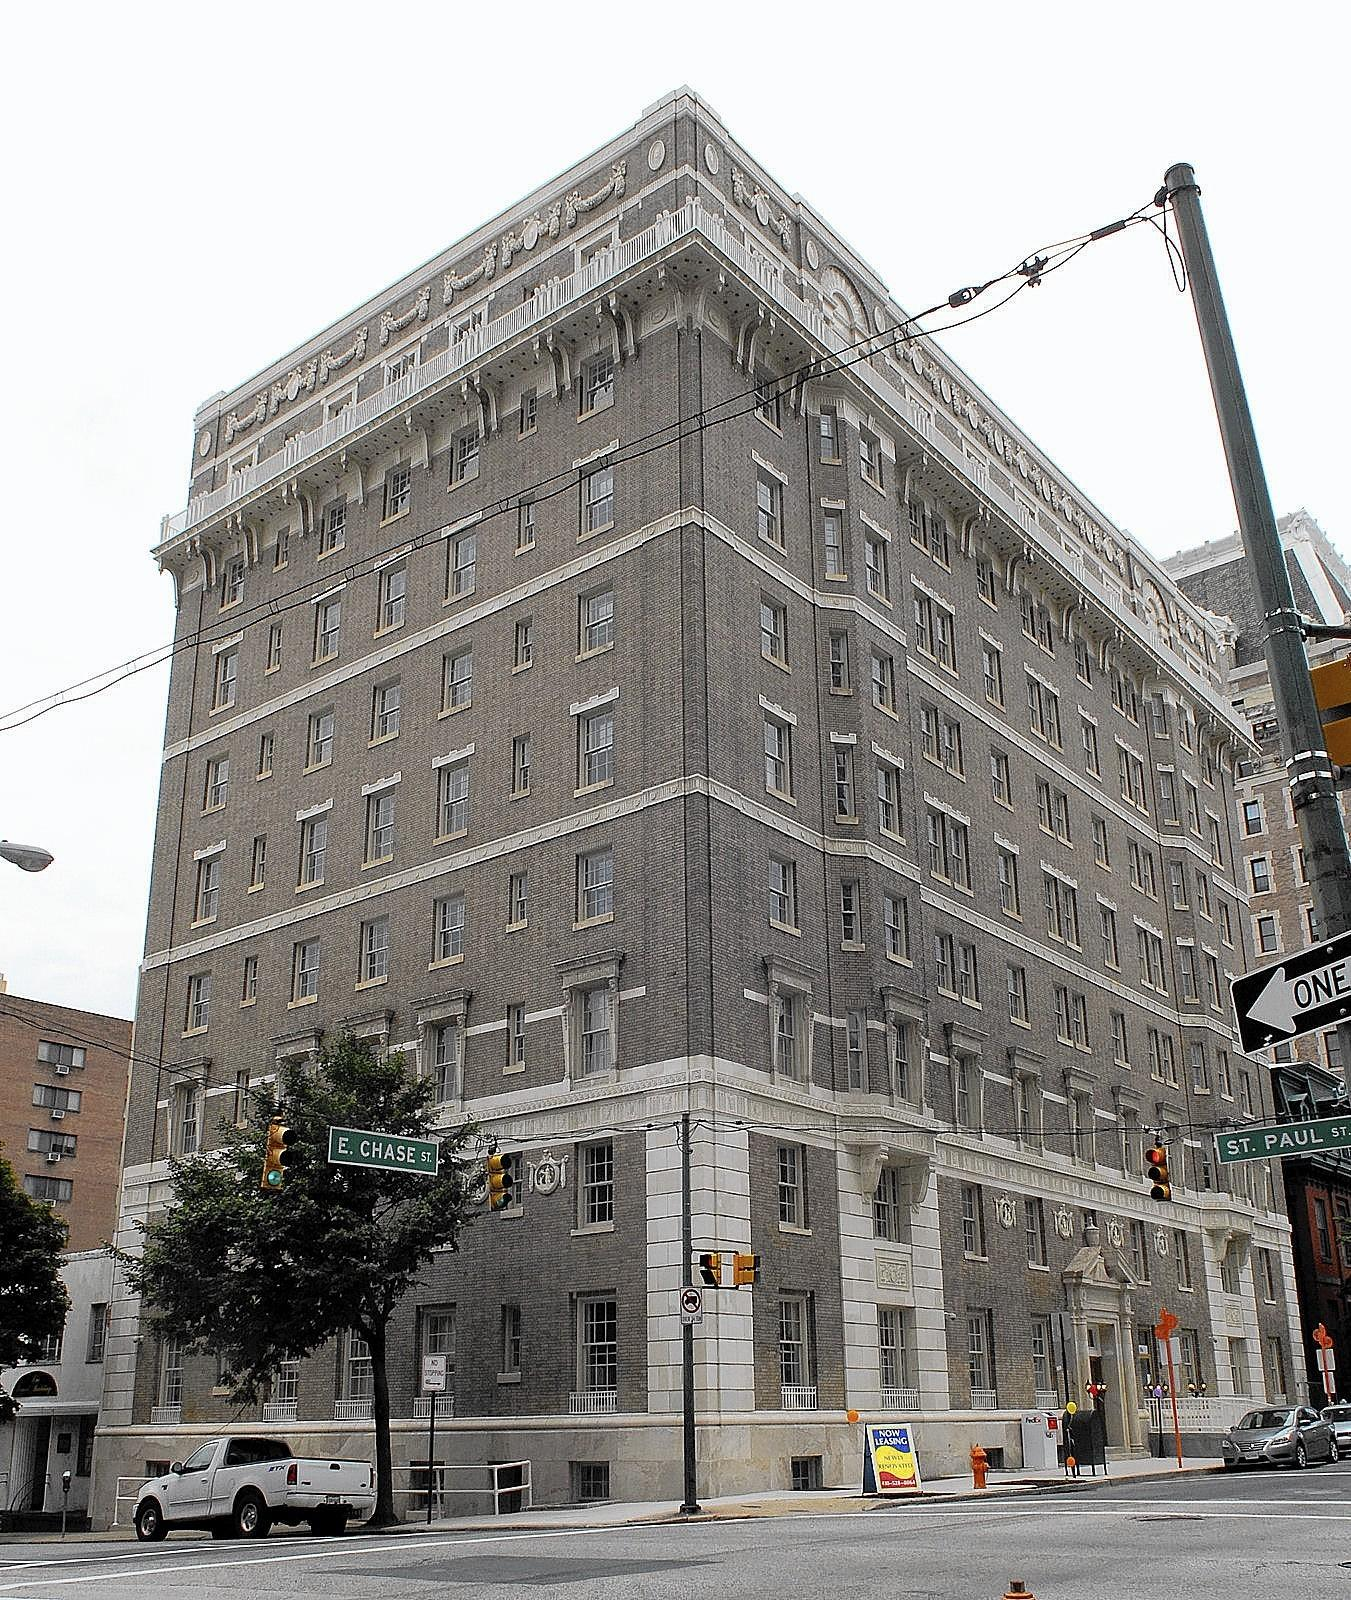 The Algonquin apartment building was first built in 1912.